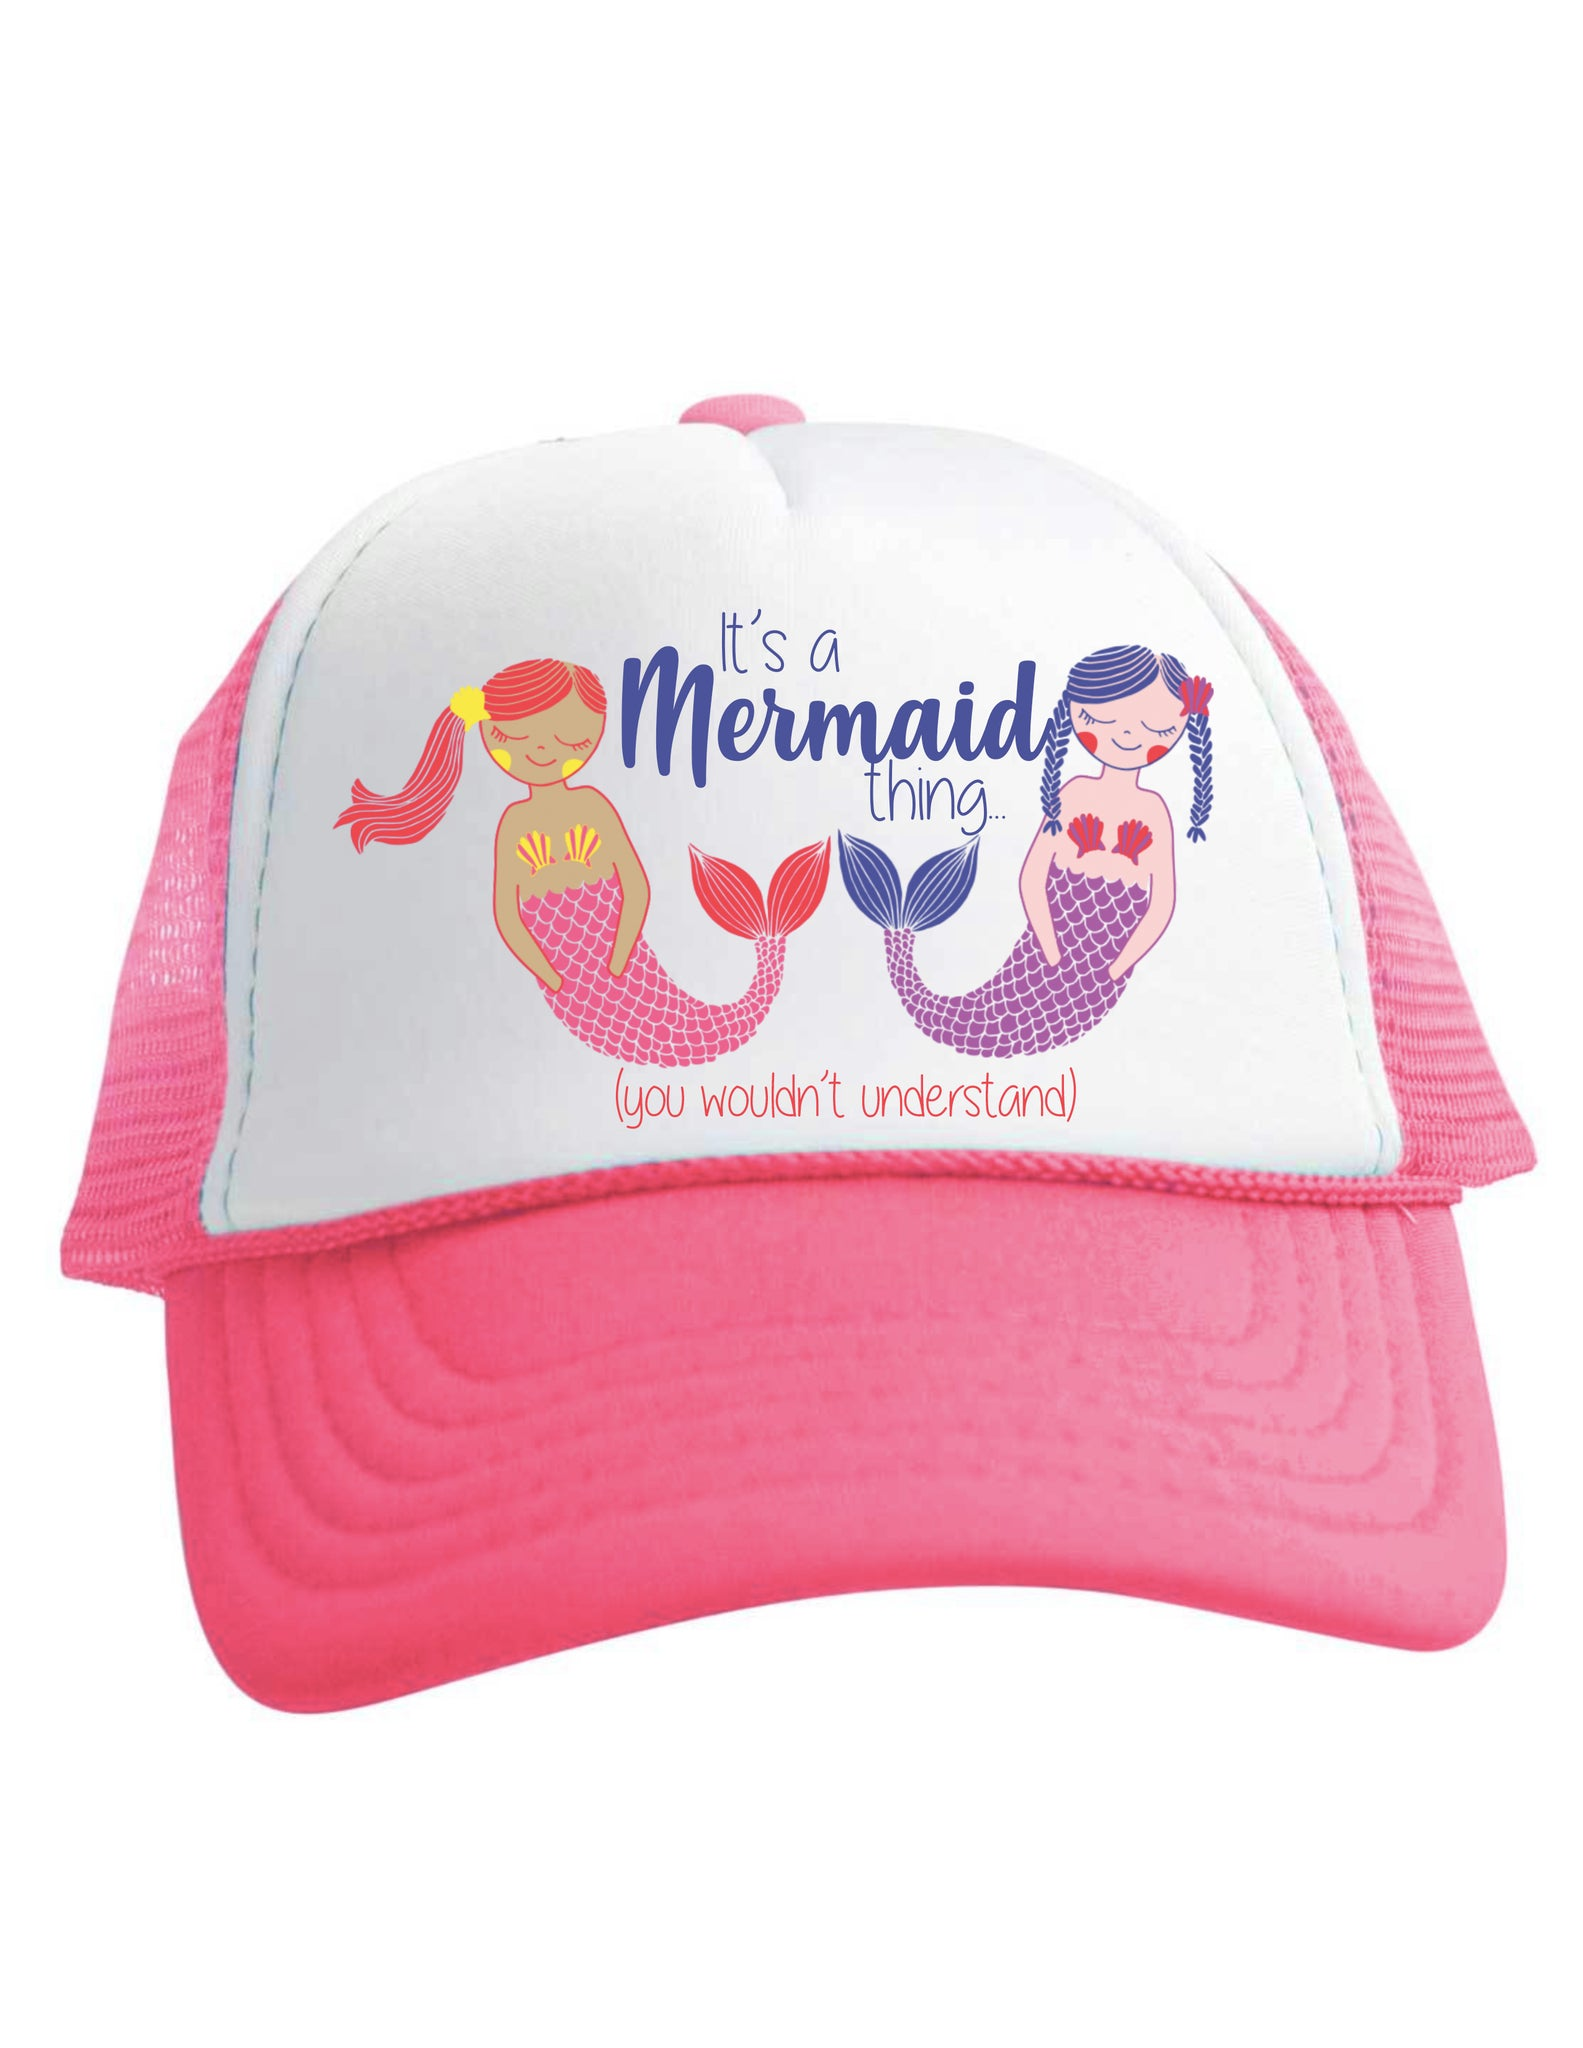 It's a Mermaid Thing You Wouldn't Understand Pink Trucker Hat Girls Baby Toddler Youth Beau and Belle Littles